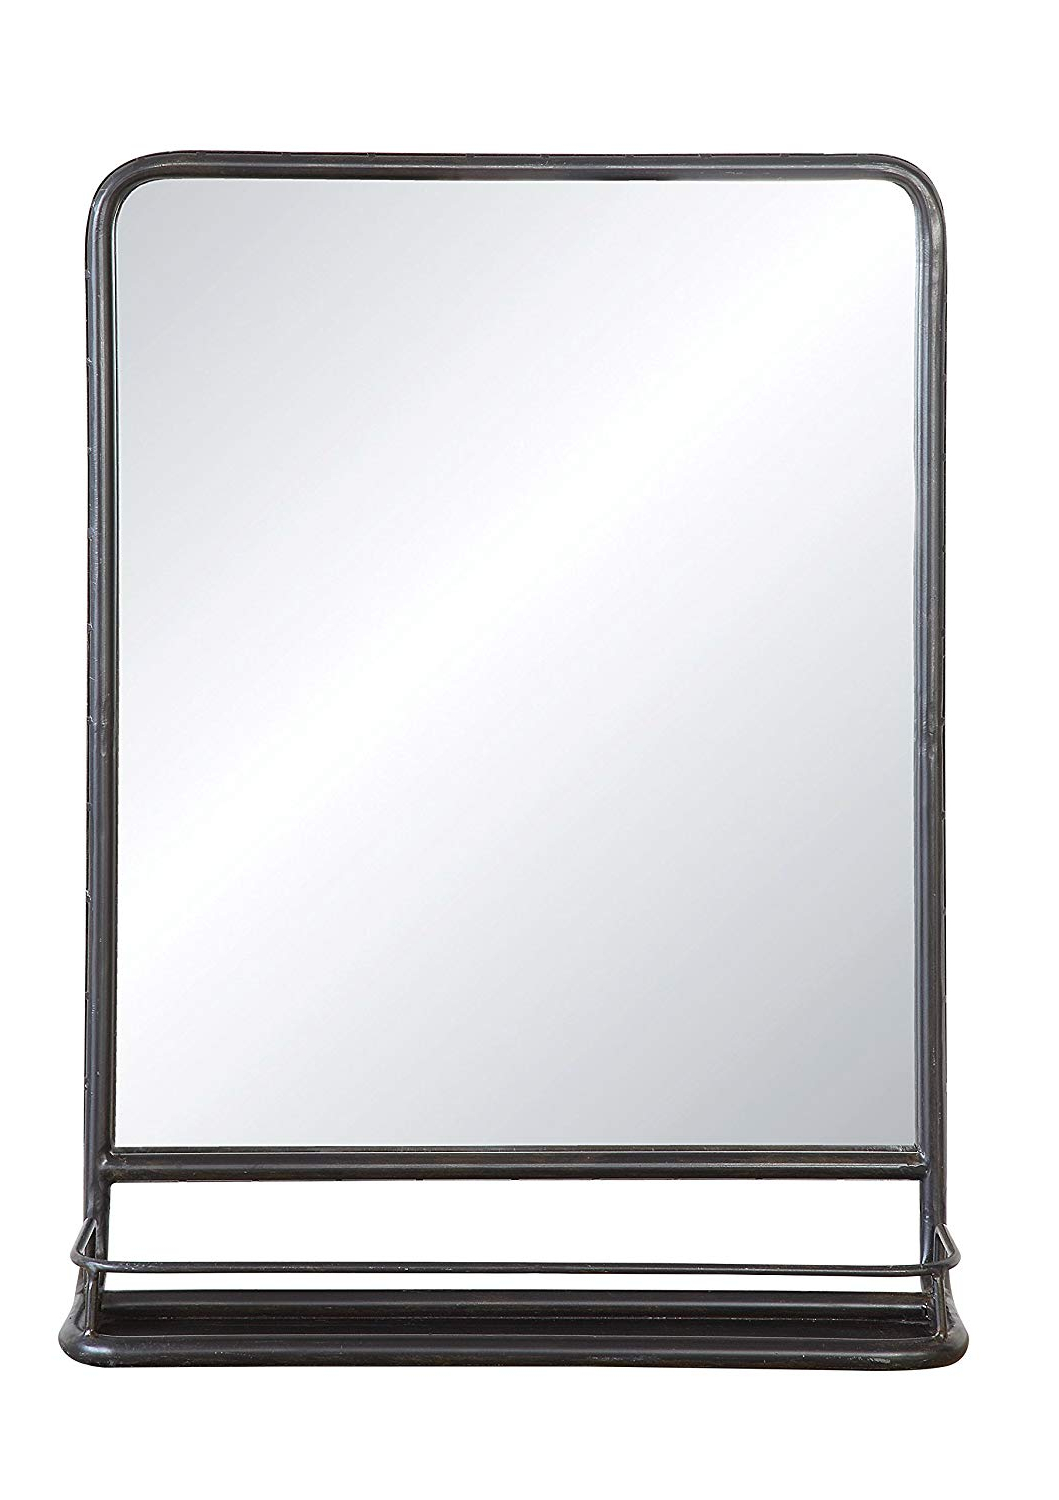 Metal Framed Wall Mirrors With Most Current Creative Co Op Rectangle Metal Framed Wall Mirror With Shelf, Single Vanity, Black (View 7 of 20)